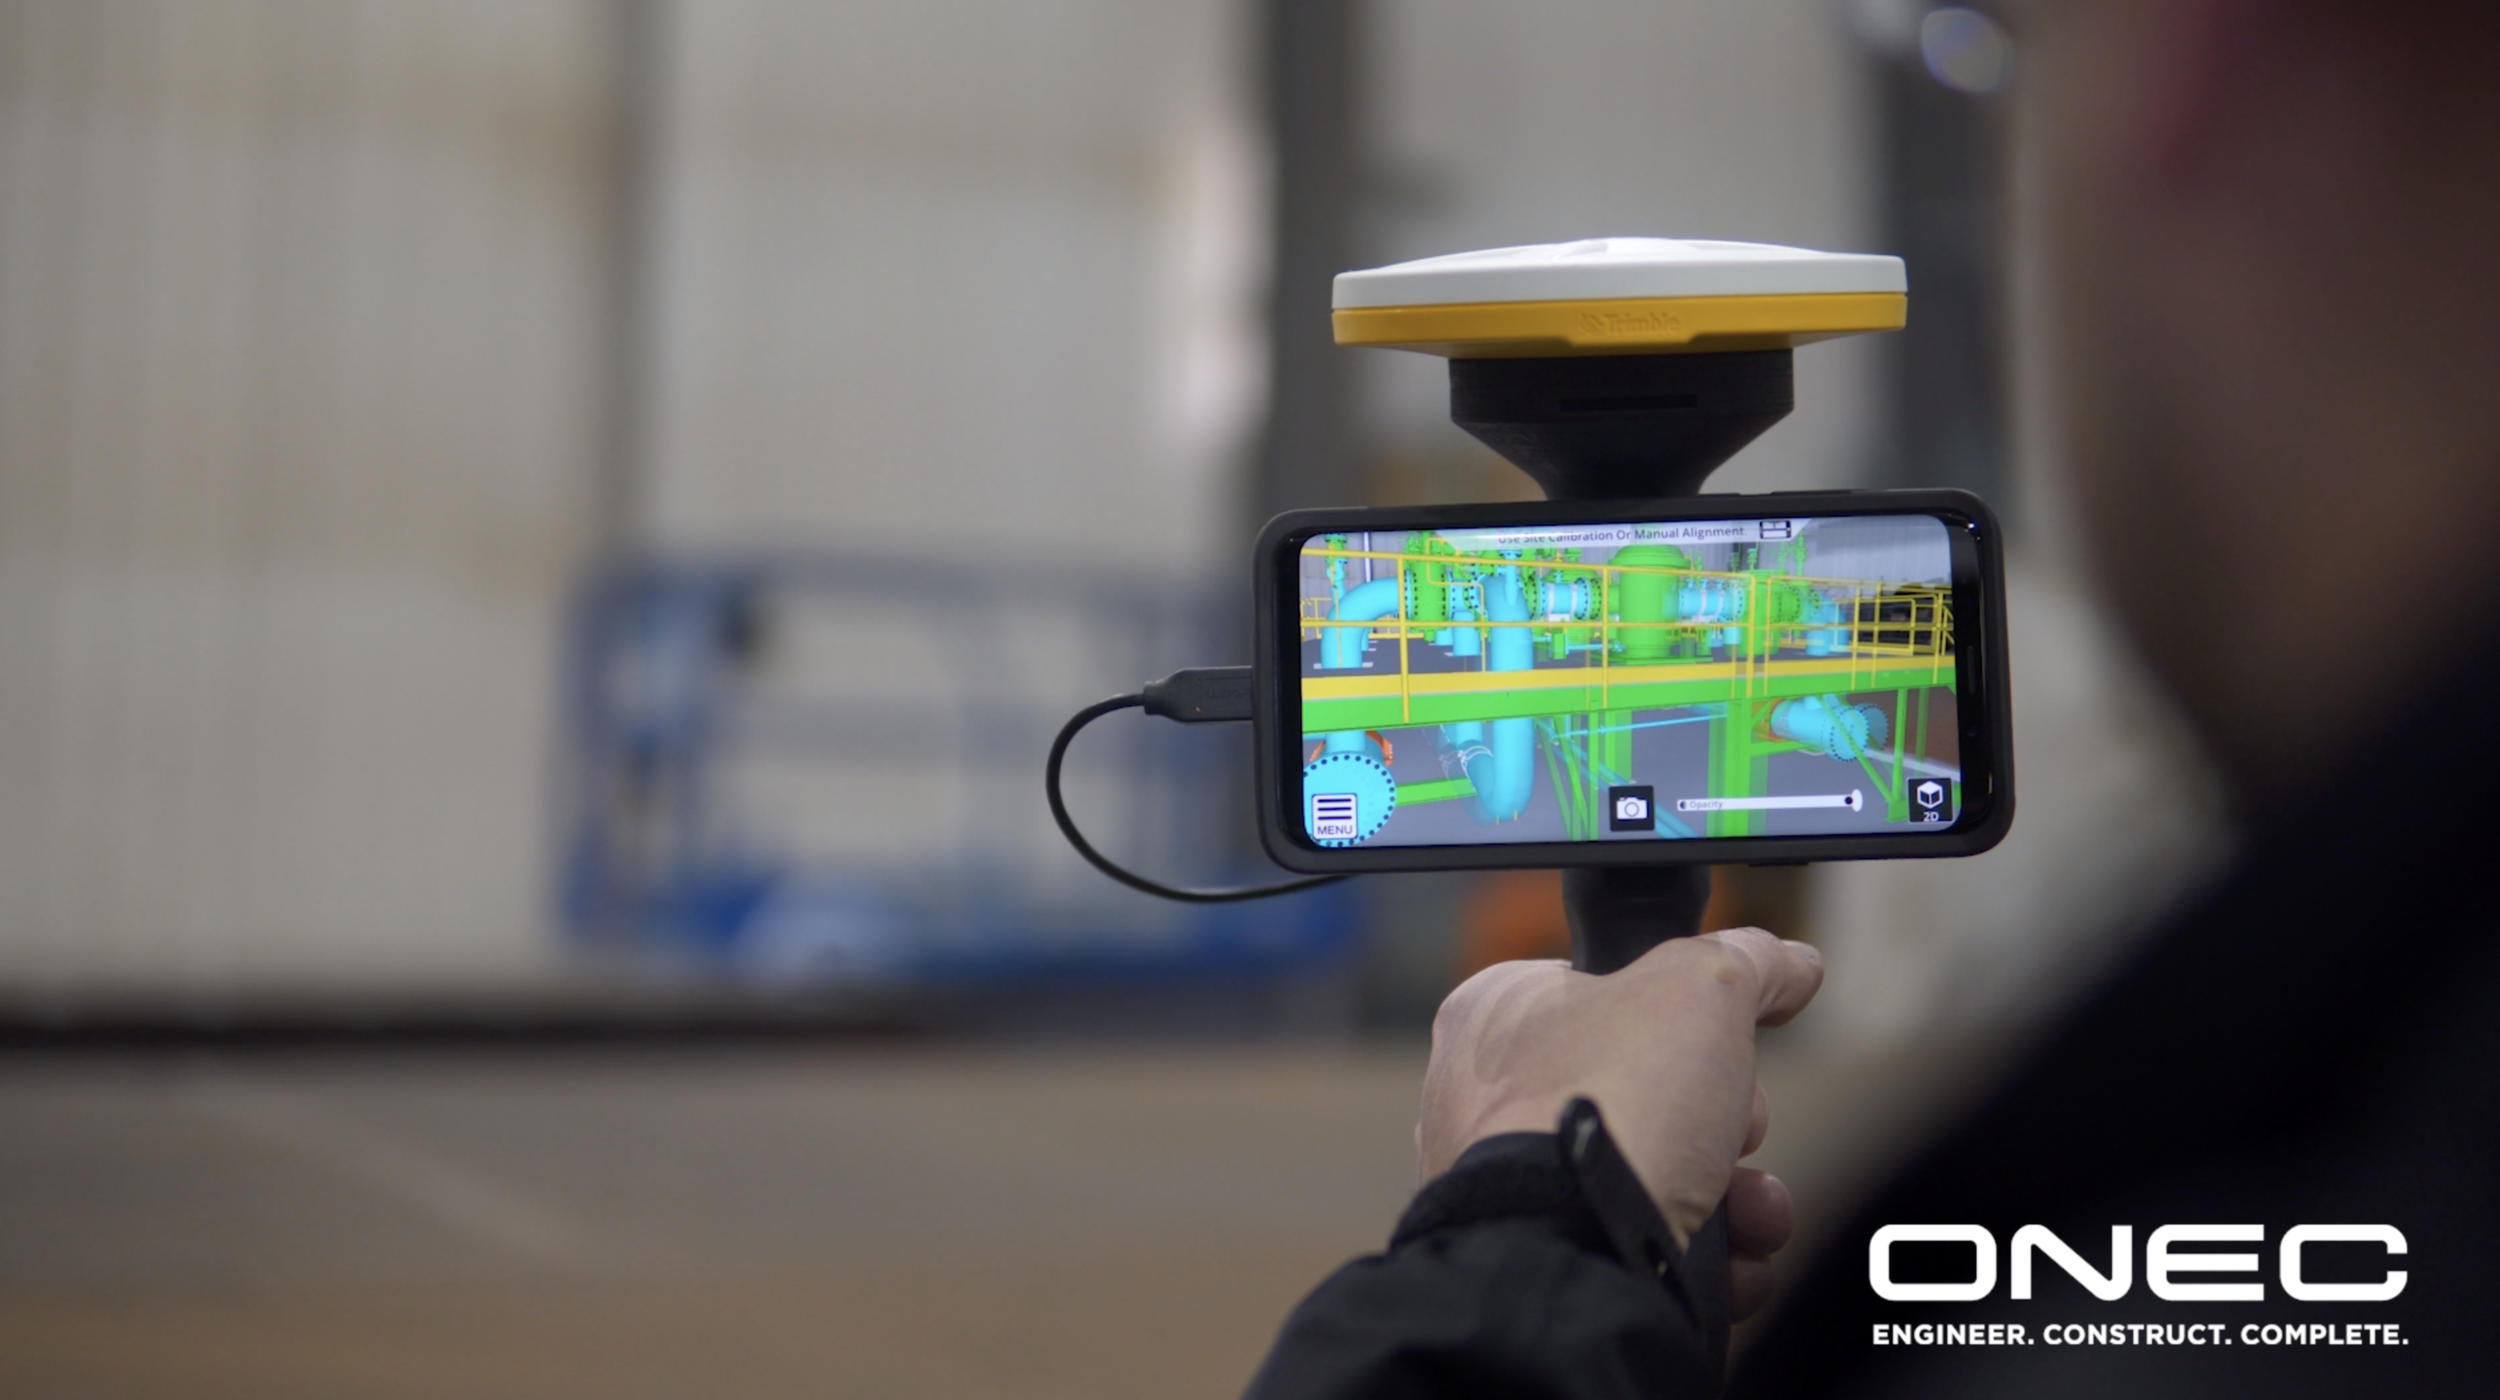 ONEC partners with Trimble SiteVision